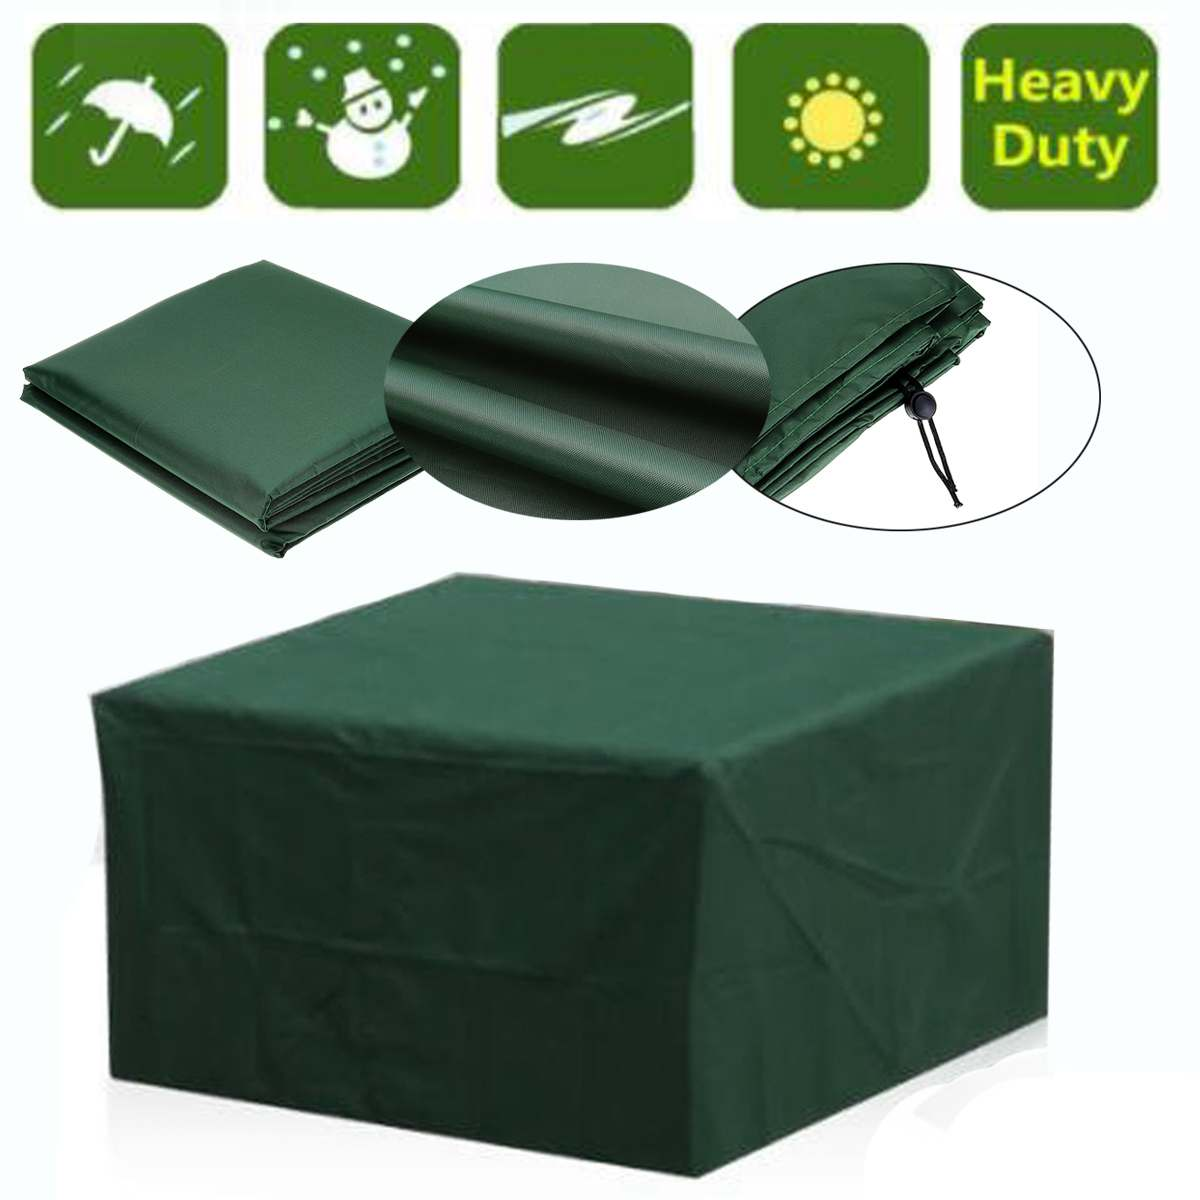 3 Shapes Waterproof Outdoor Garden Patio Furniture Covers Rain Snow Chair Covers For Sofa Table Chair Dust Proof Cover Dust Covers